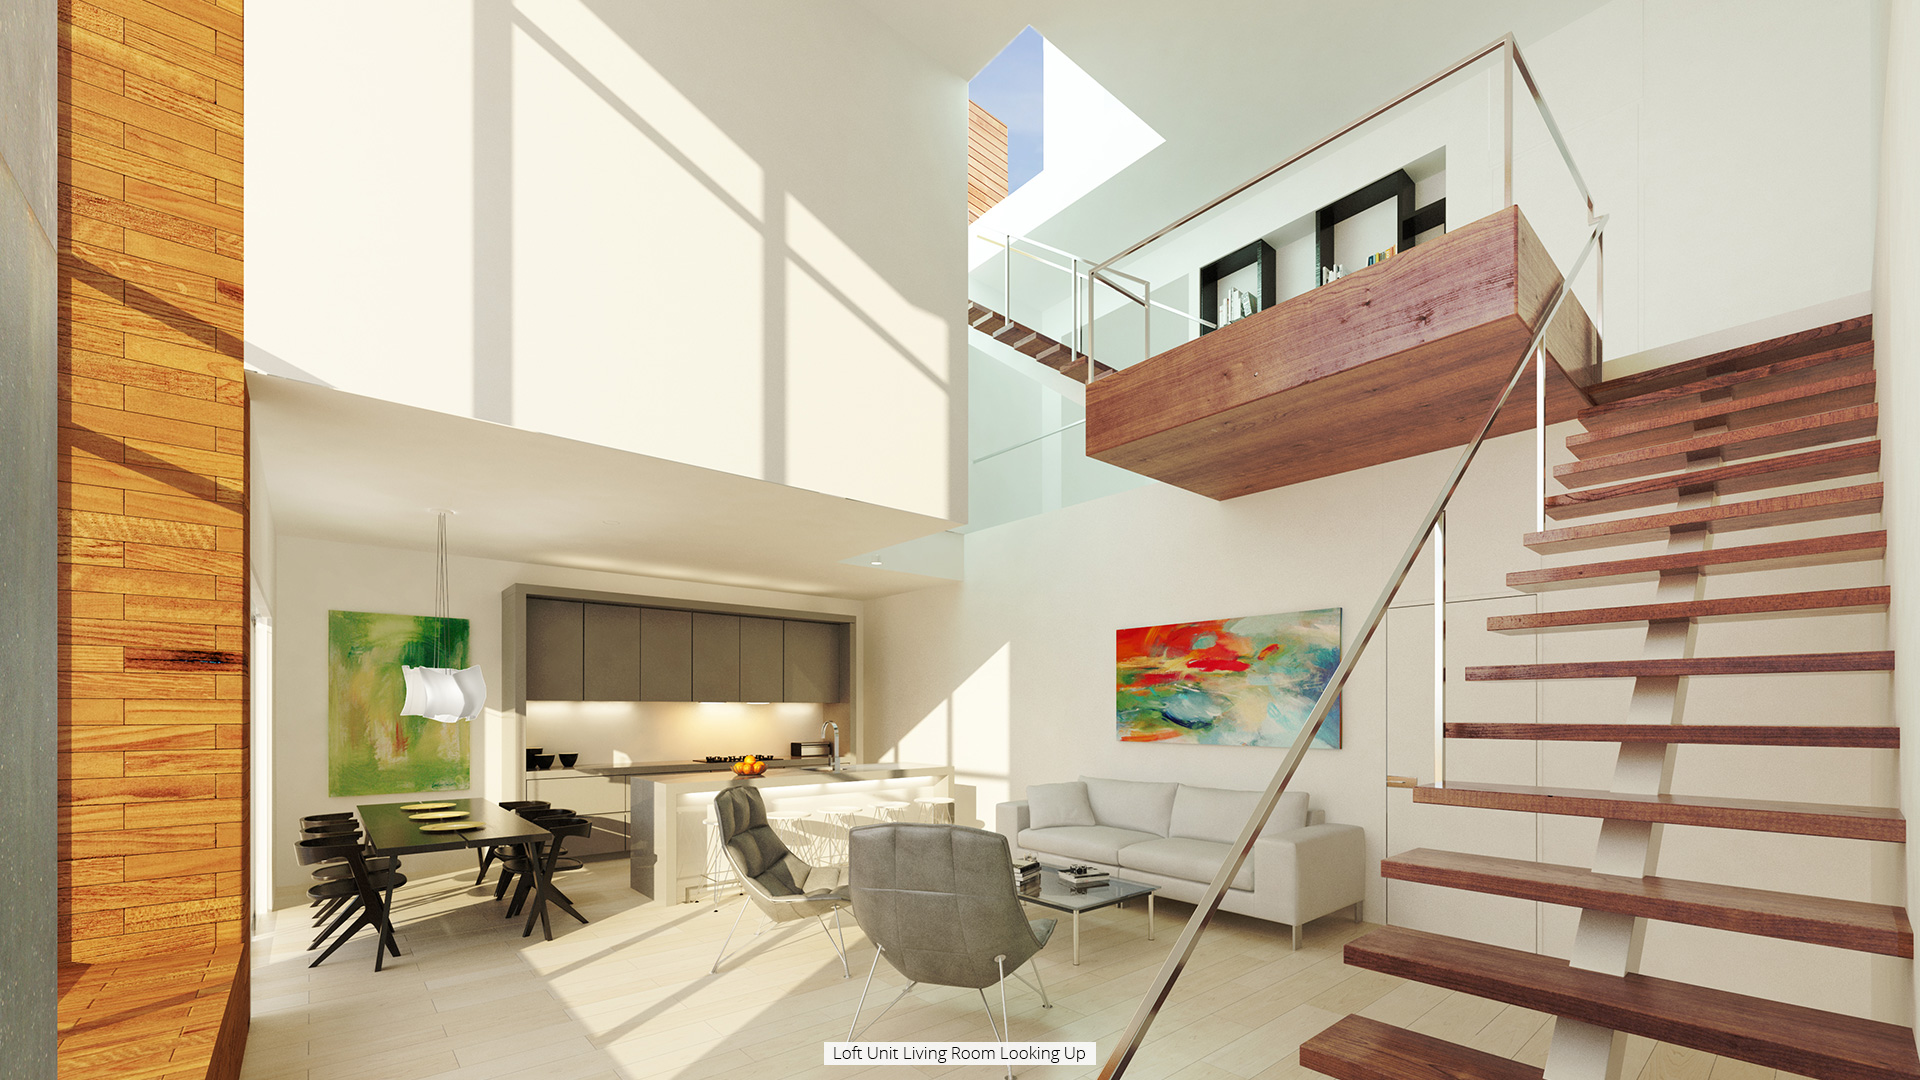 Gallery-Loft-Unit-Living-Room-Looking-Up – Doherty Real Estate